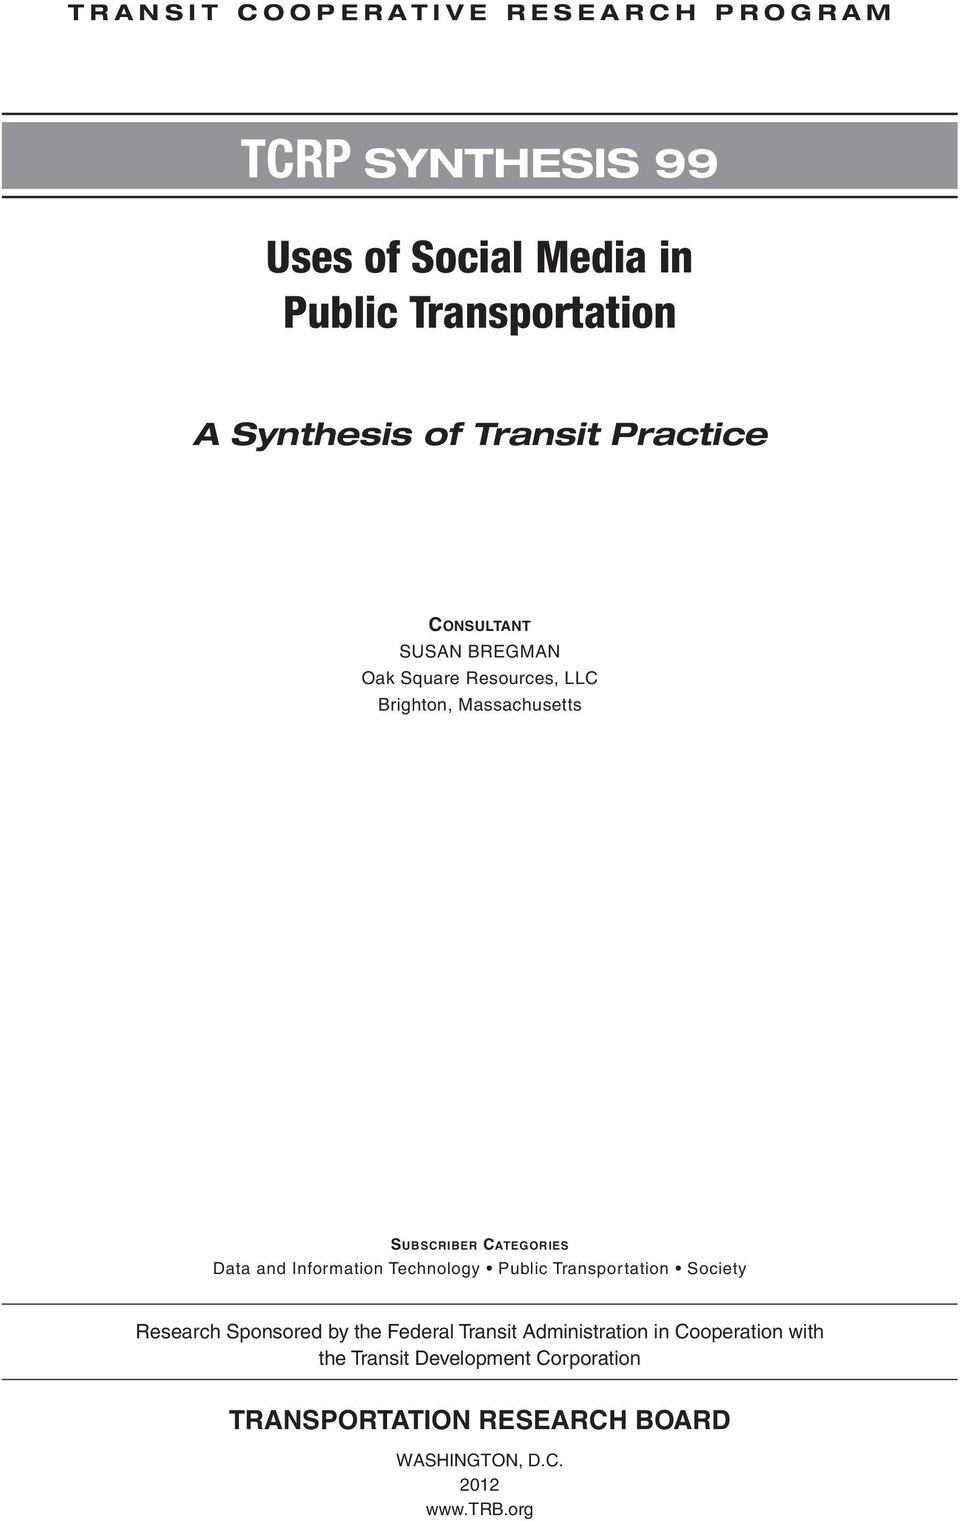 Data and Information Technology Public Transportation Society Research Sponsored by the Federal Transit